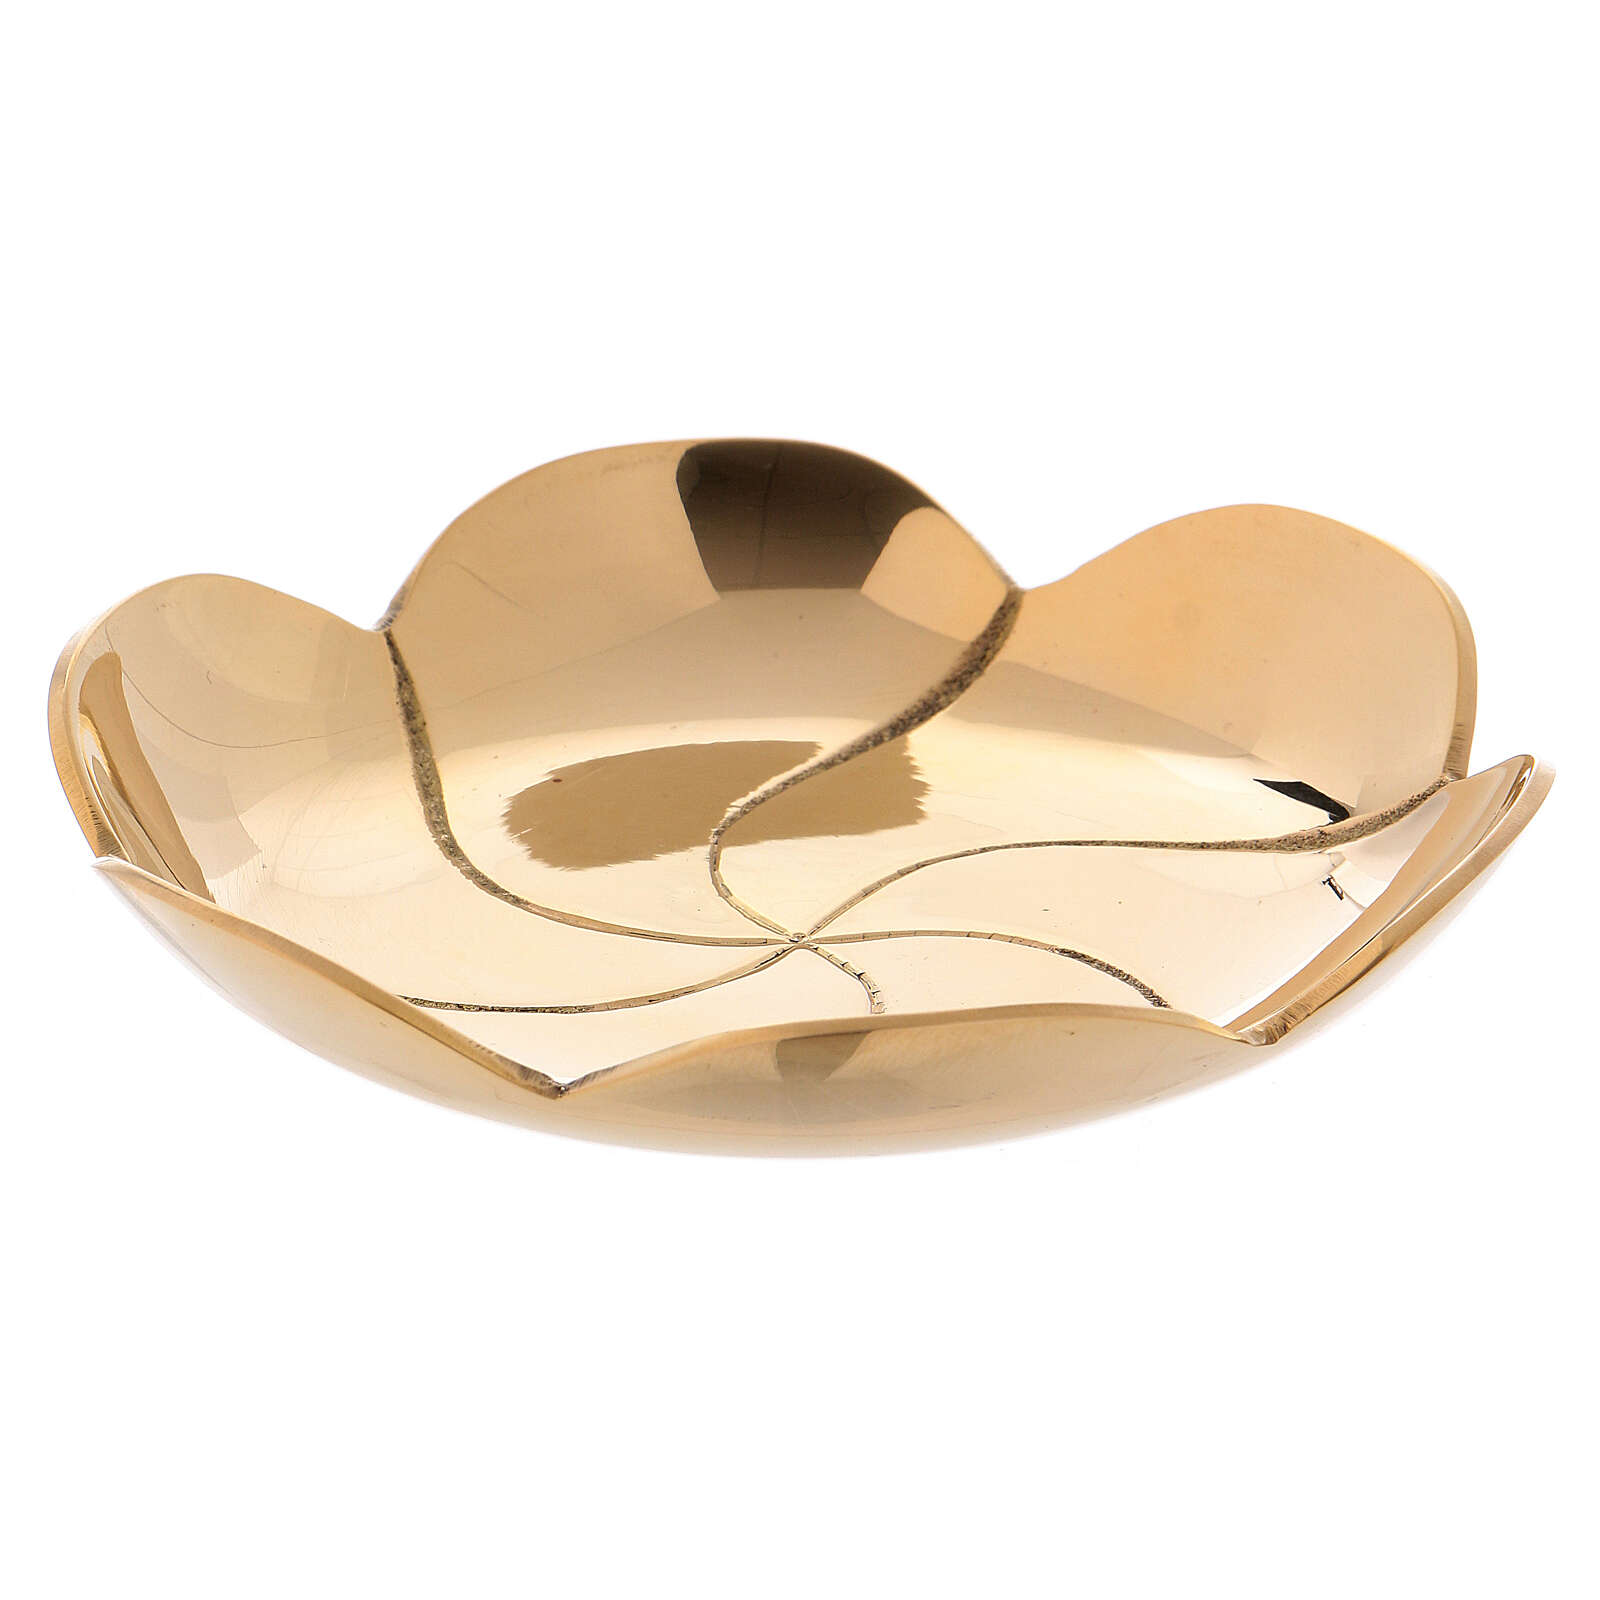 Gold plated brass plate lotus flower diam. 3 3/4 in 3